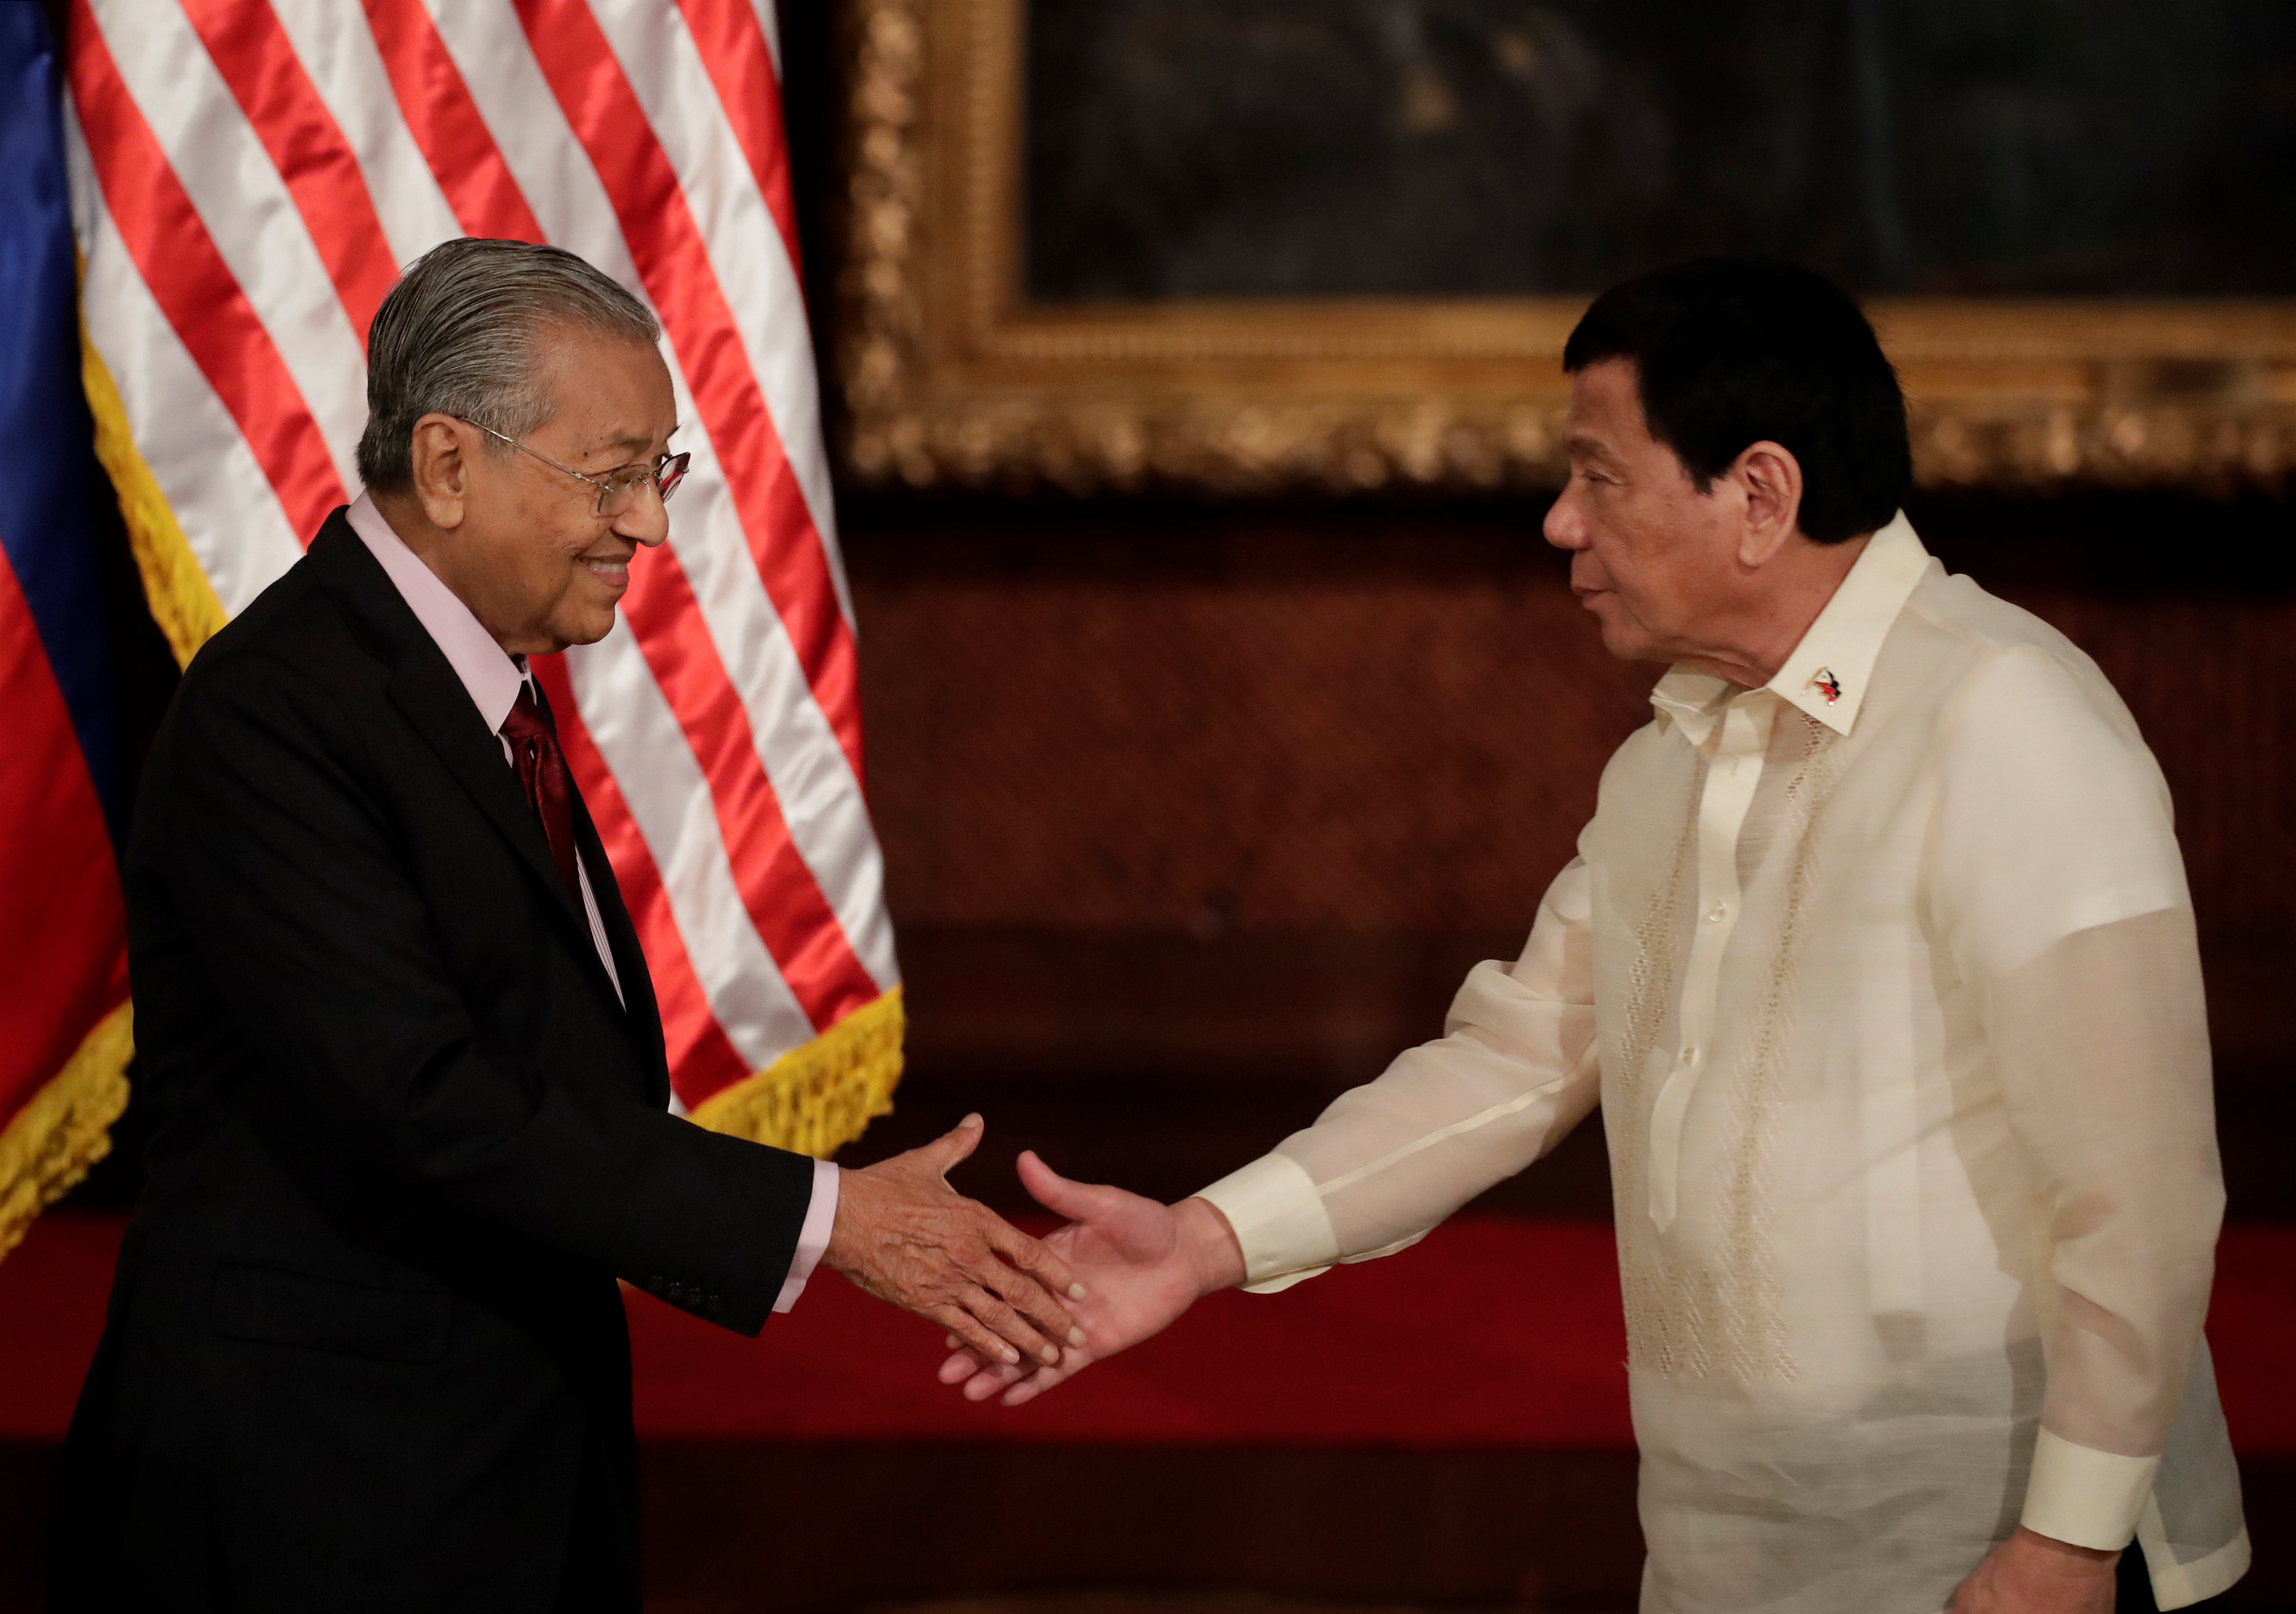 Philippine President Rodrigo Duterte and Malaysian Prime Mahathir Bin Mohamad watch a dance performance during the welcoming ceremony for the Malaysian leader at the Malacanang presidential palace in Manila